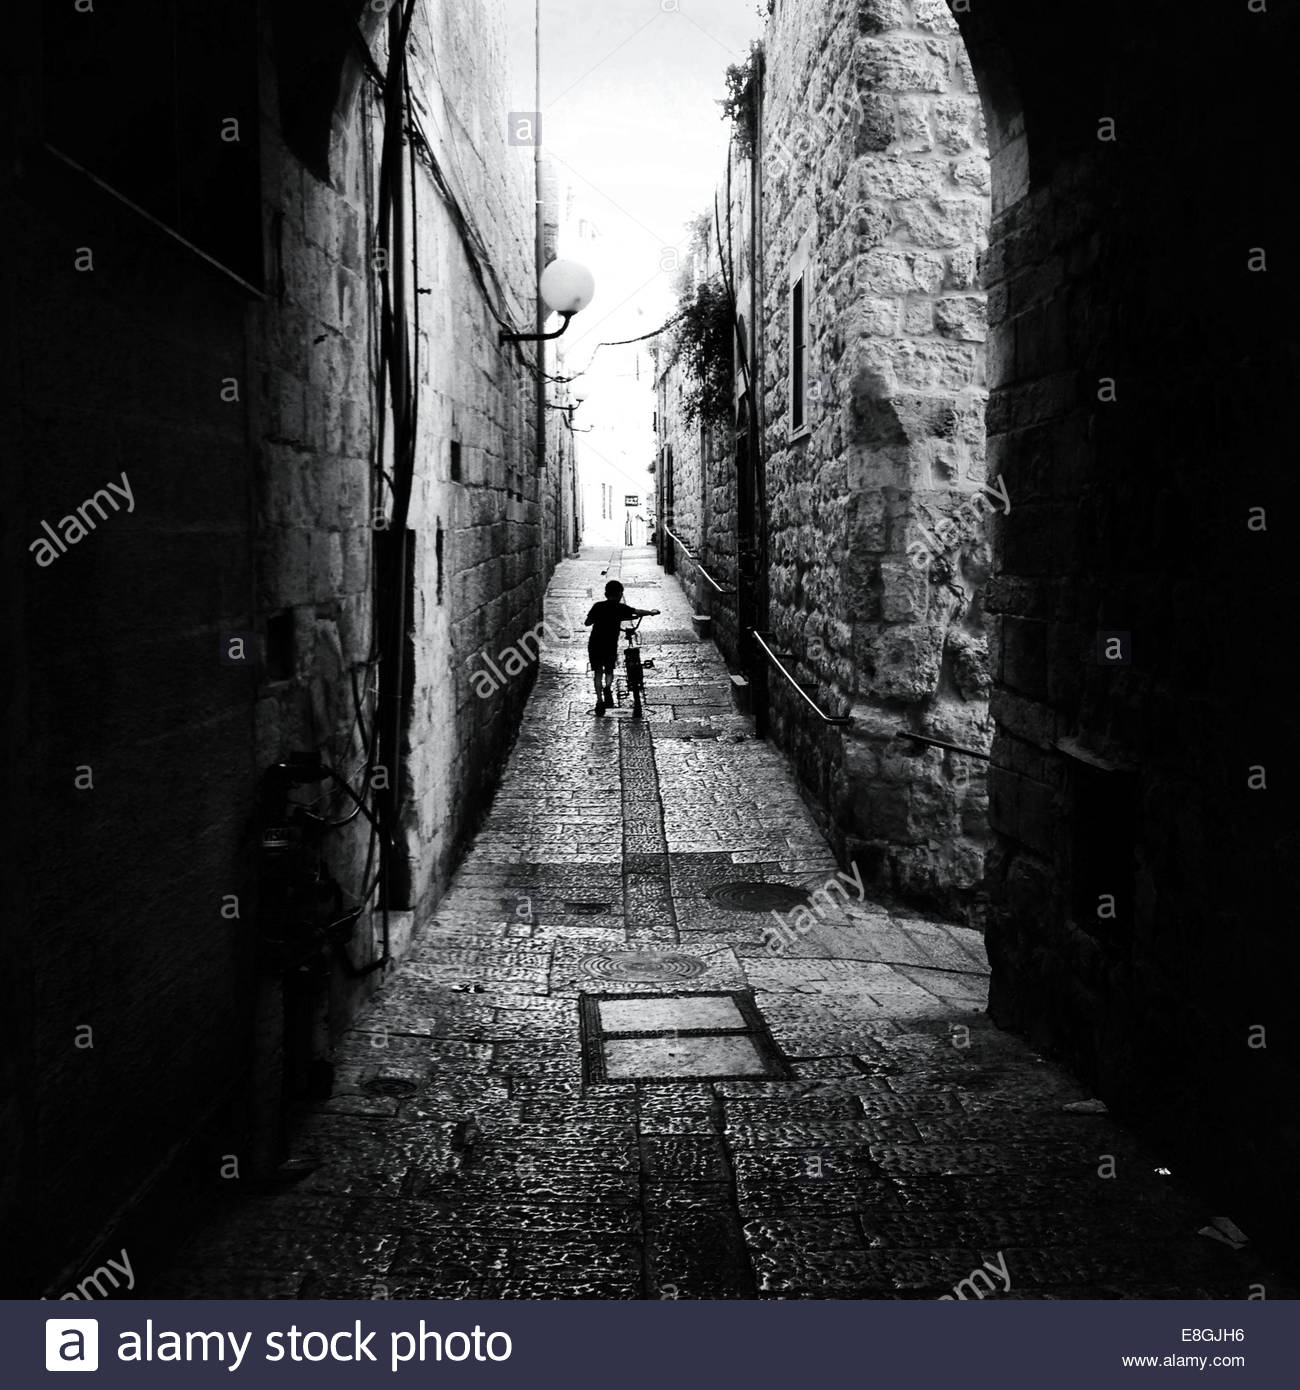 Rear view of boy with bike on street - Stock Image